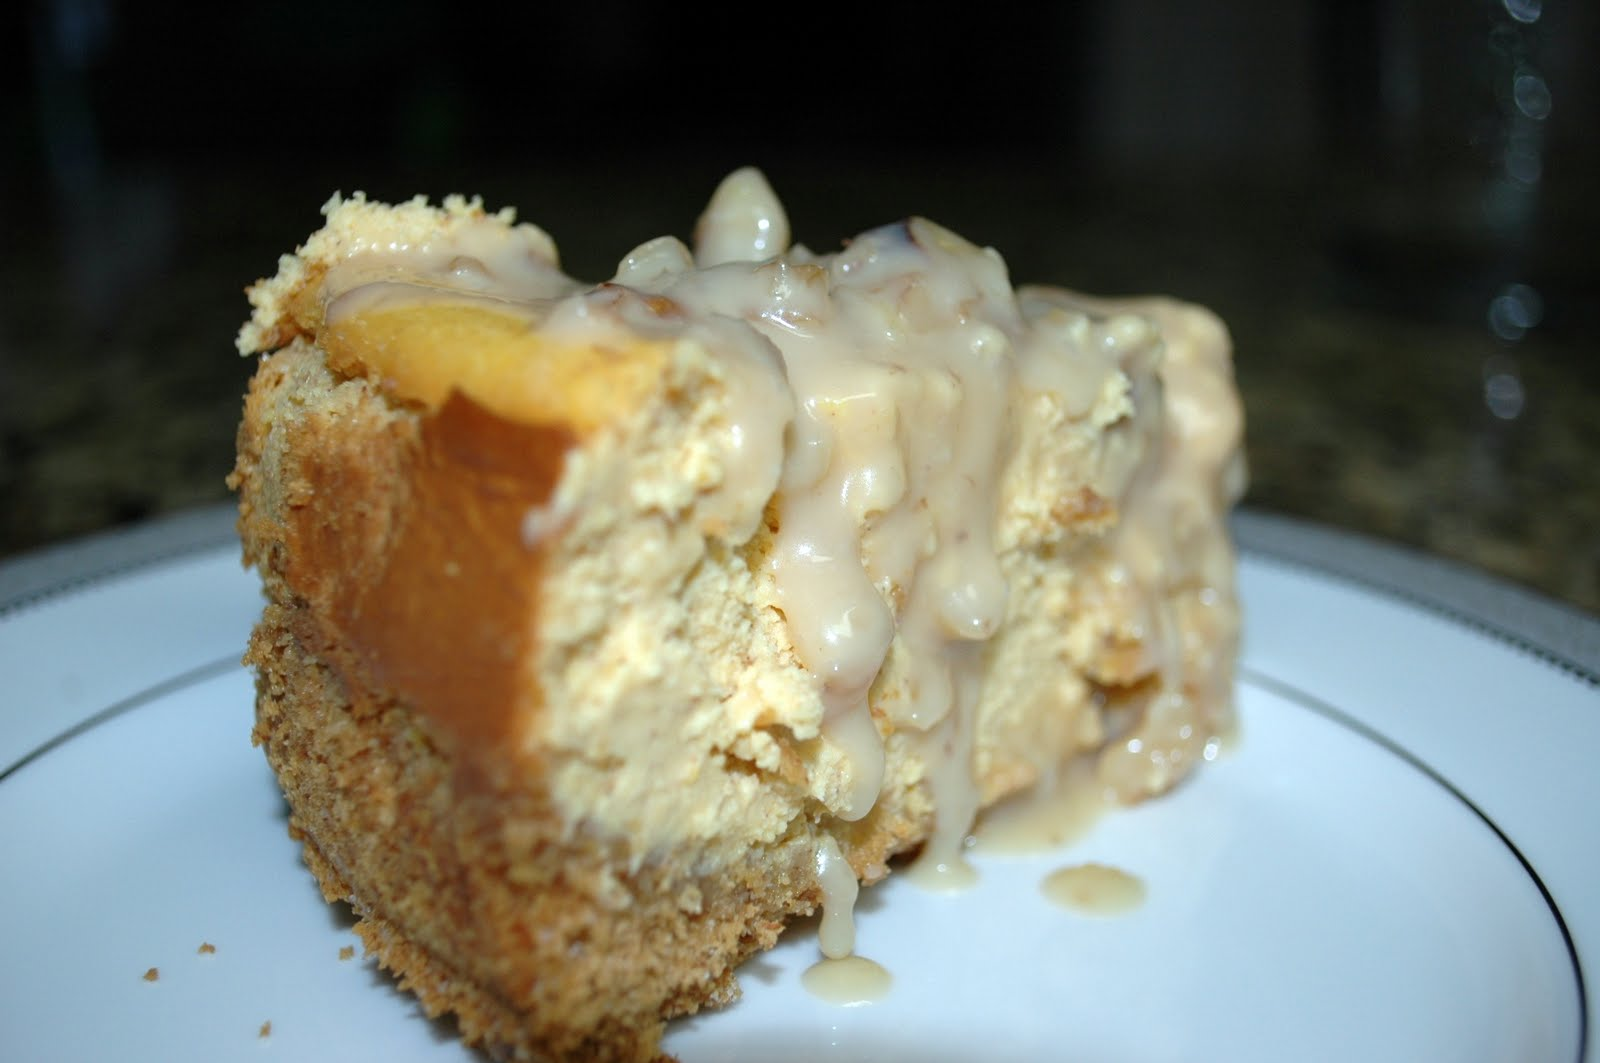 ... Thymes and Good Food: Pumpkin Maple Cheesecake with Walnut-Maple Glaze